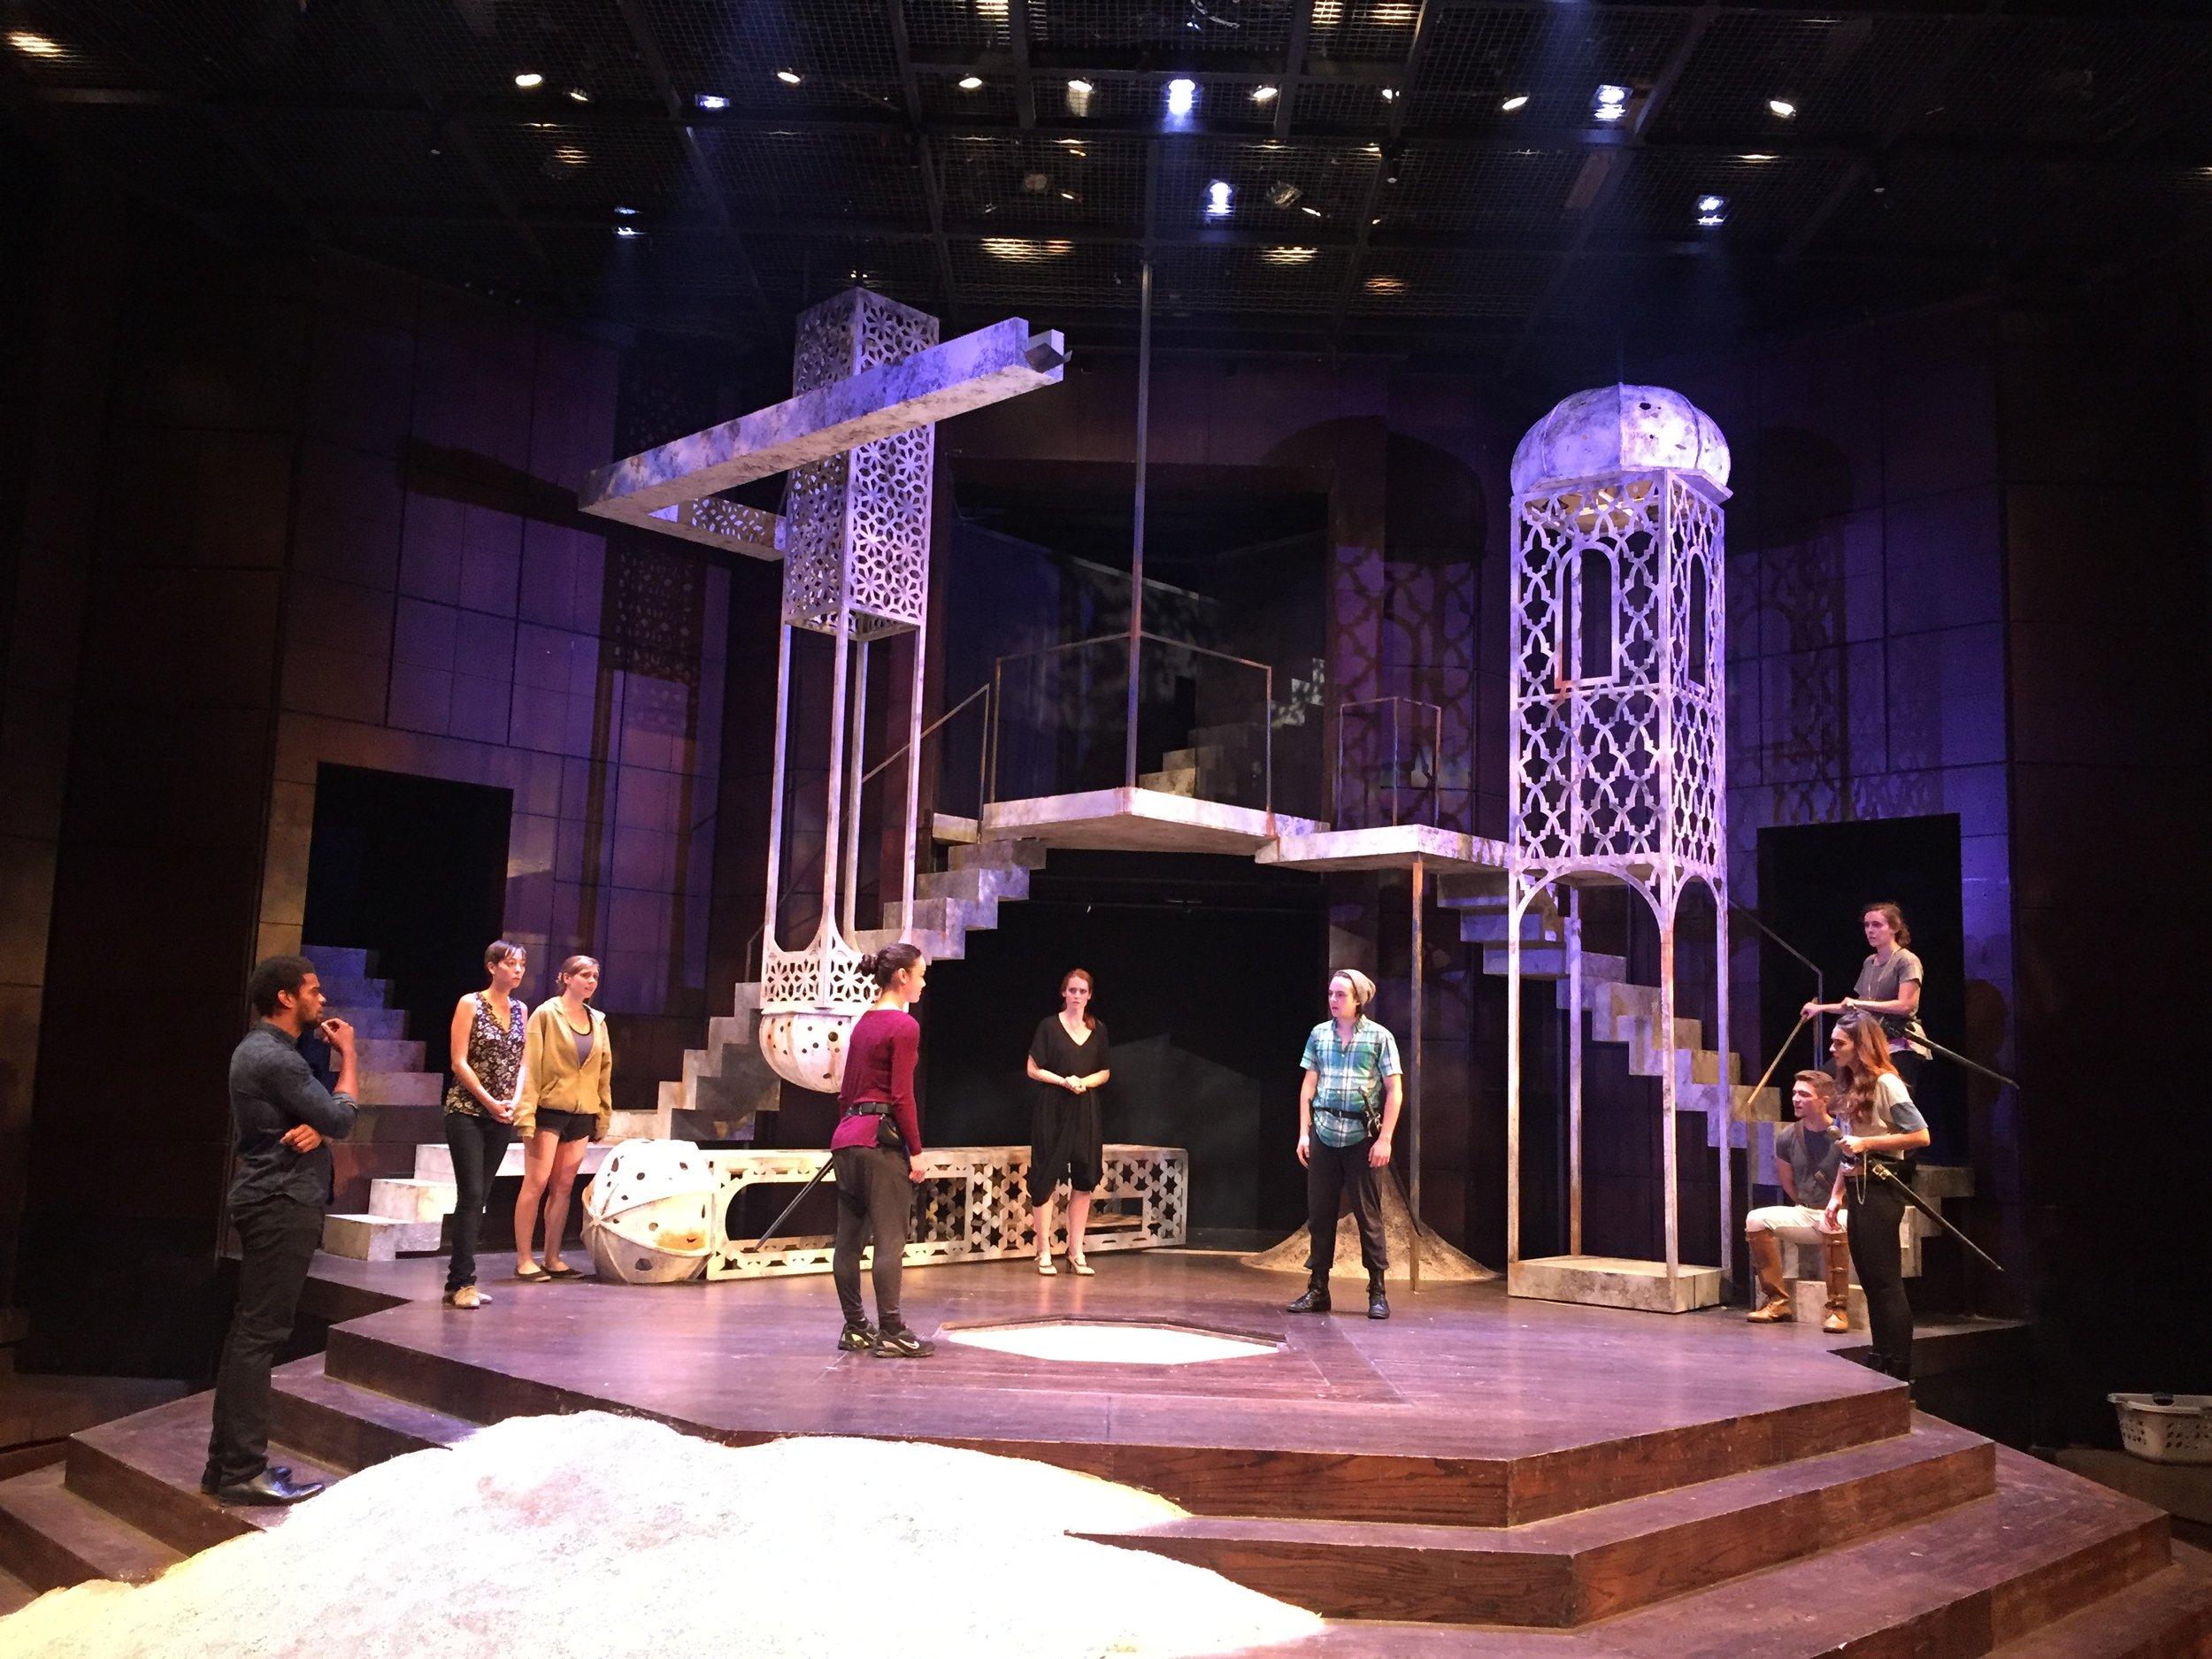 Twelfth Night at SMU  |  Directed by Jack Greenman